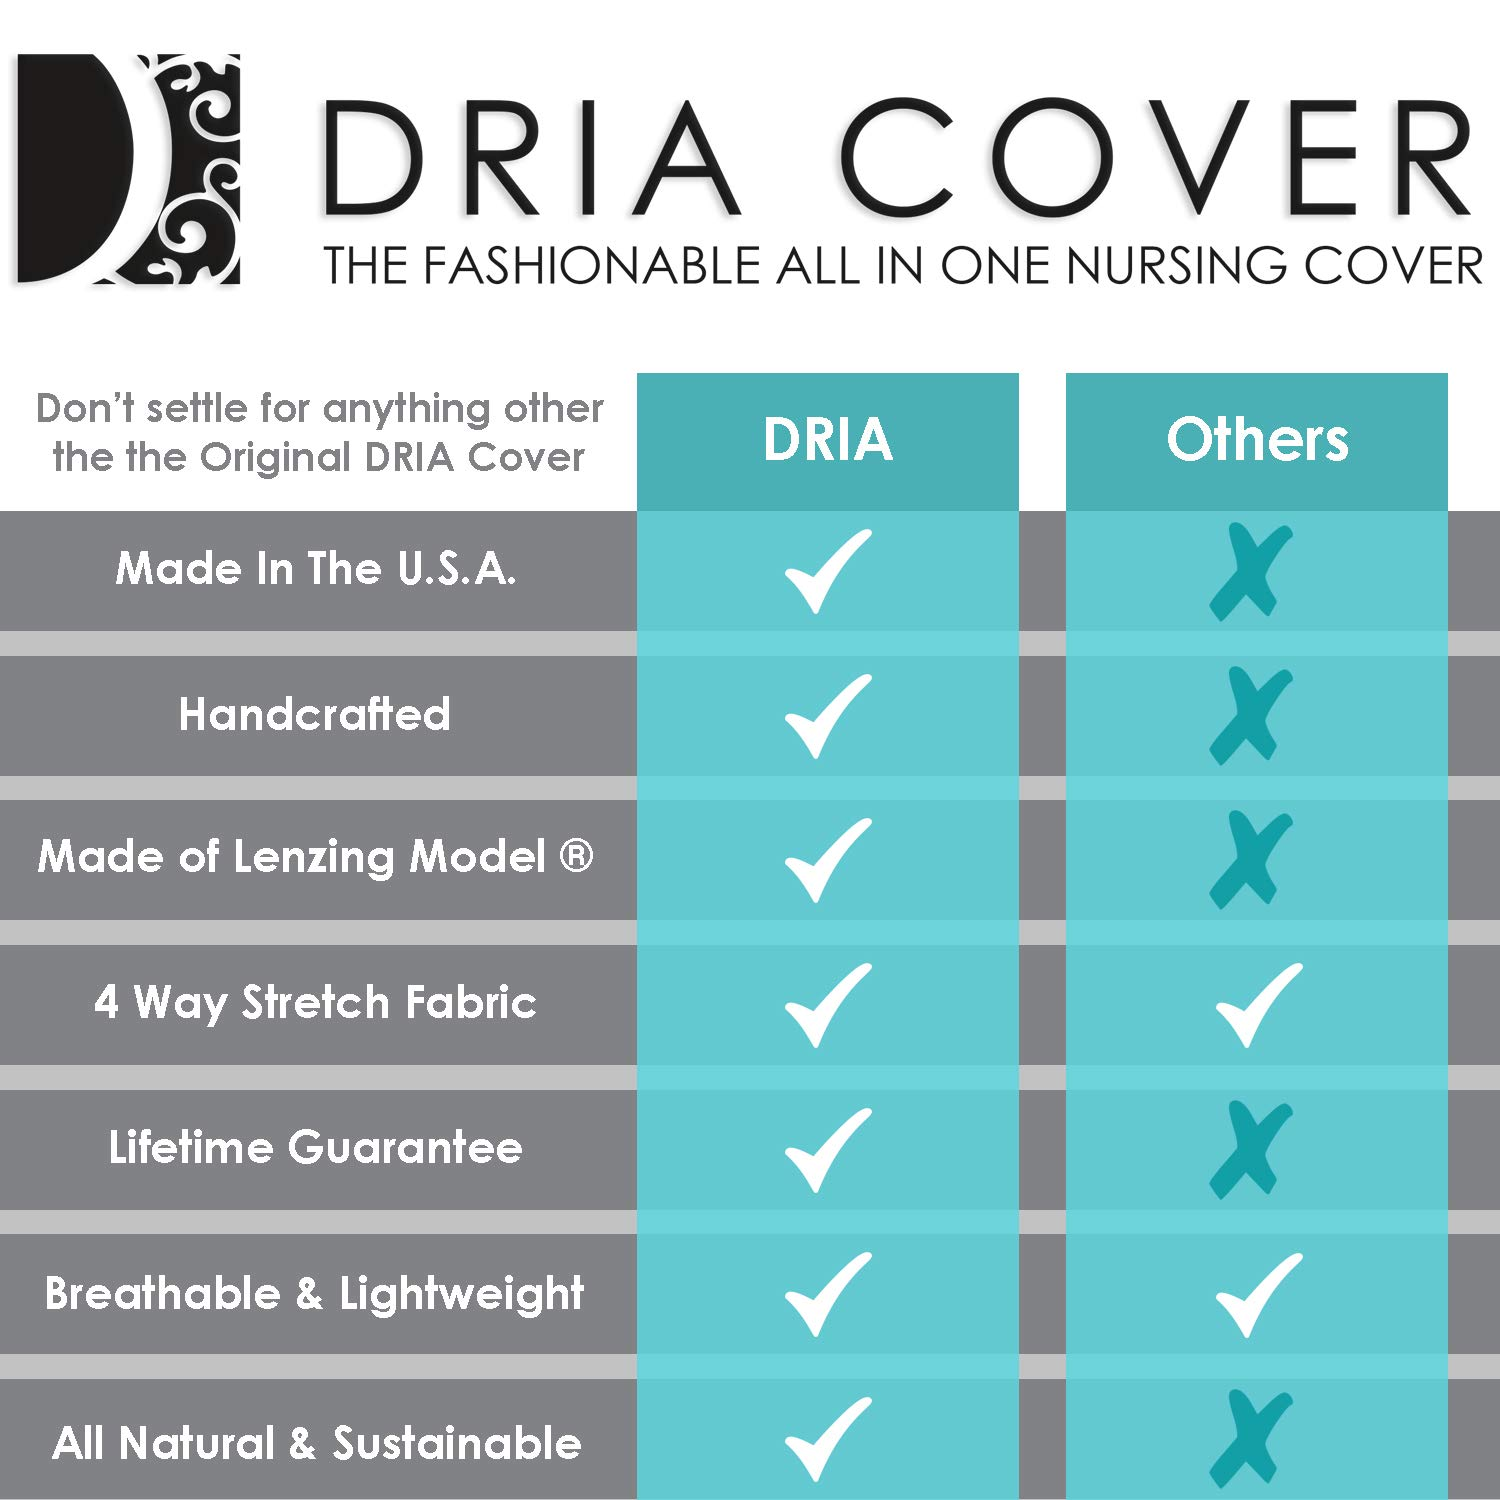 Fashionable Nursing Covers by DRIA - 'The All-In-One, Stroller Cover, Car Seat Cover' - Made in USA from Premium Four Way Stretch and Breathable Modal Fabric (Oslo Style: Grey Stripe) by DRIA Cover (Image #7)